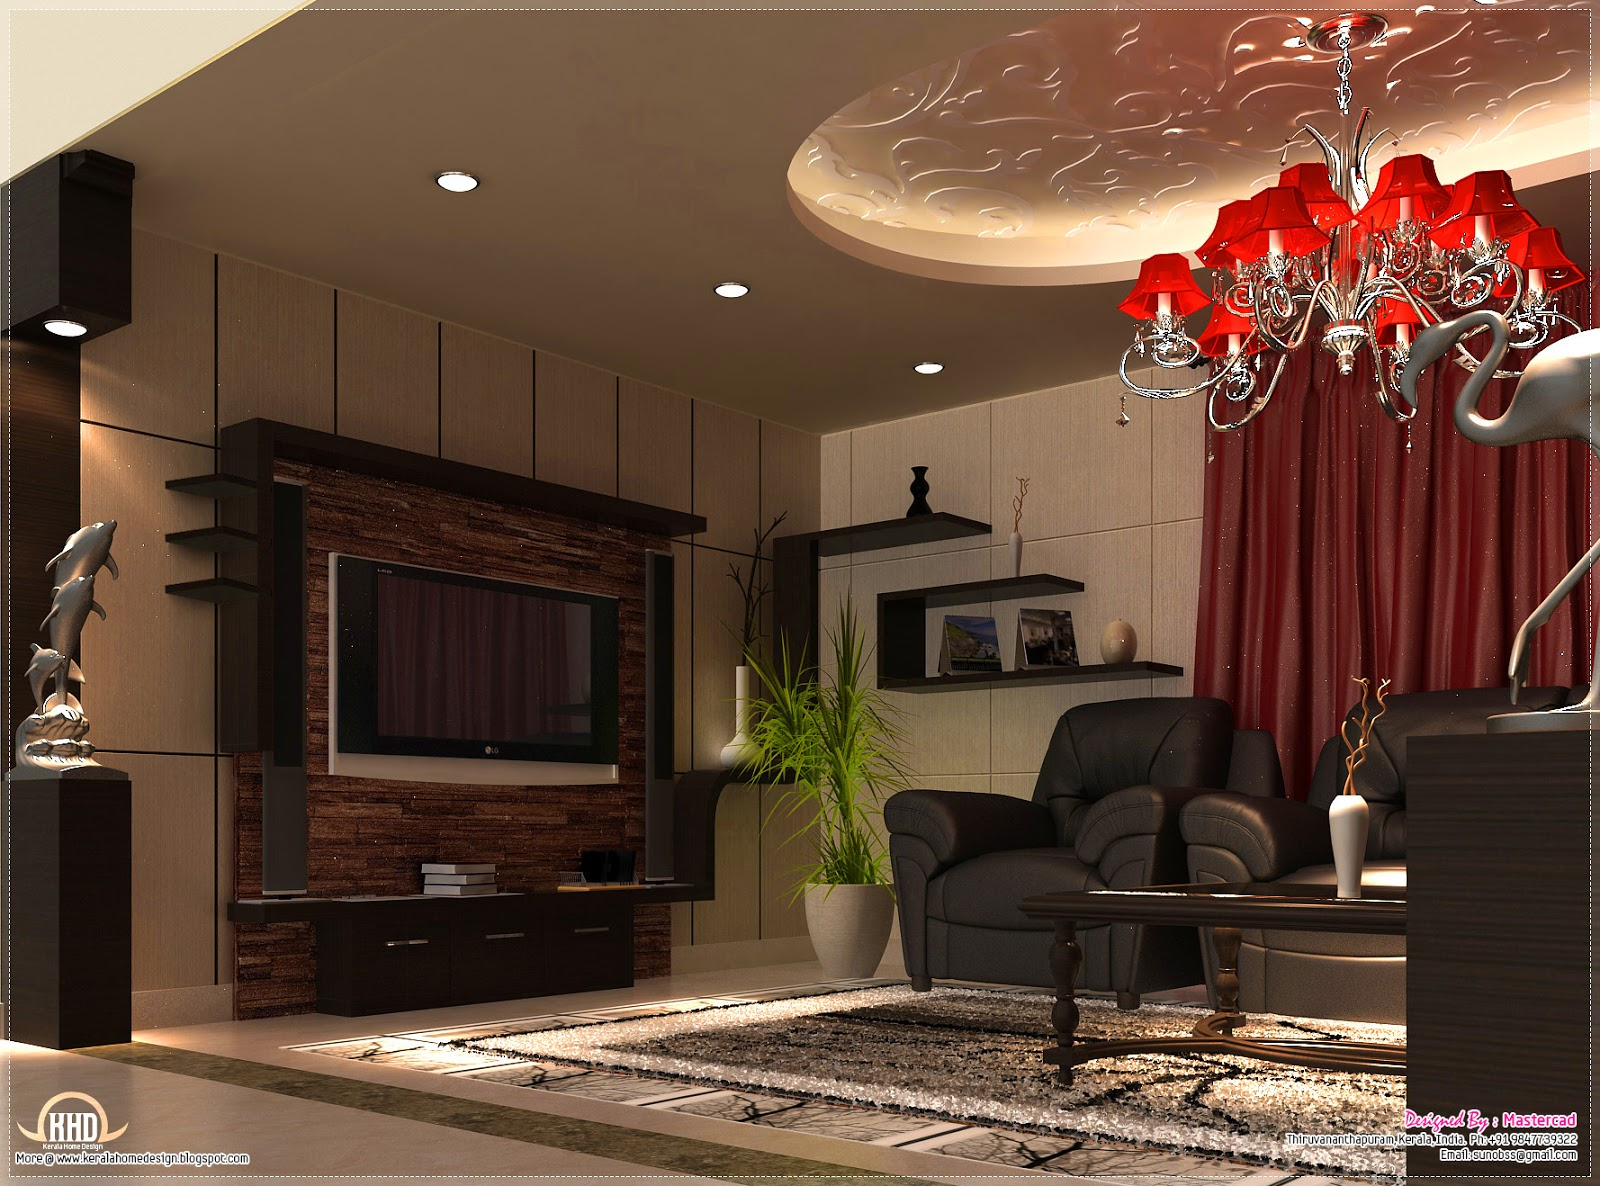 Interior design ideas home kerala plans for Living room 4 pics 1 word